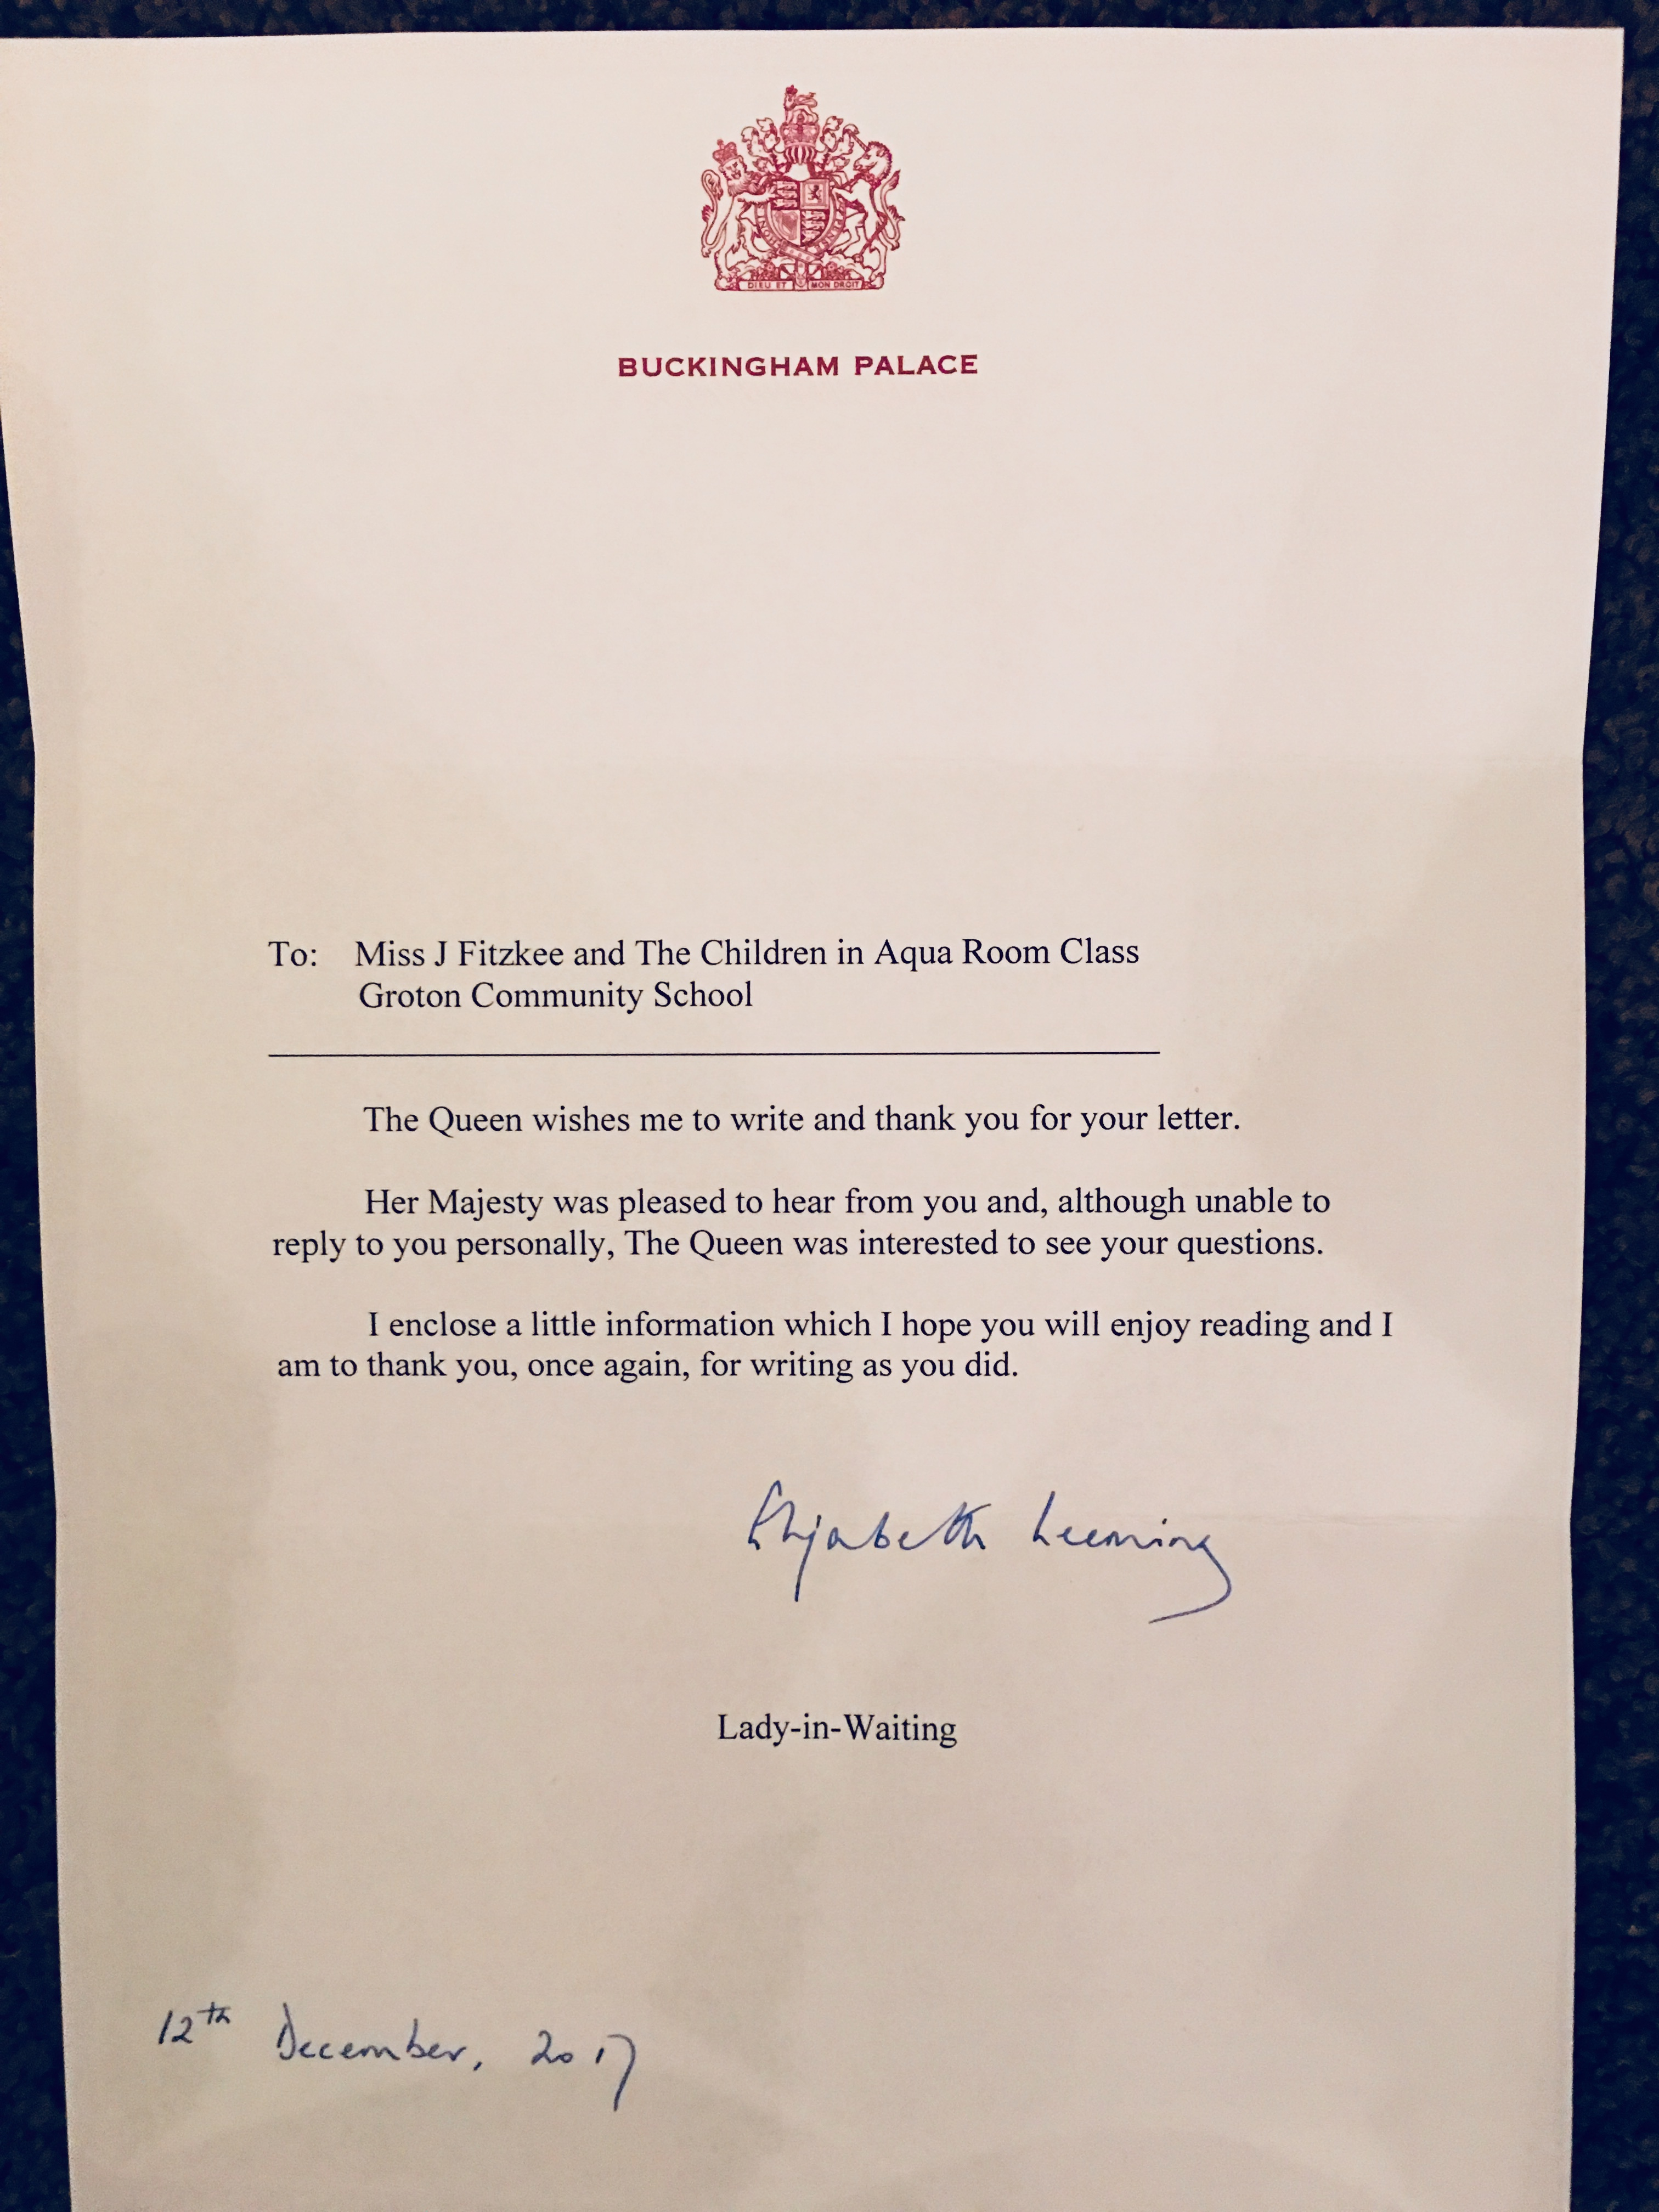 A Letter From Her Majesty the Queen   A Teacher's Reflections